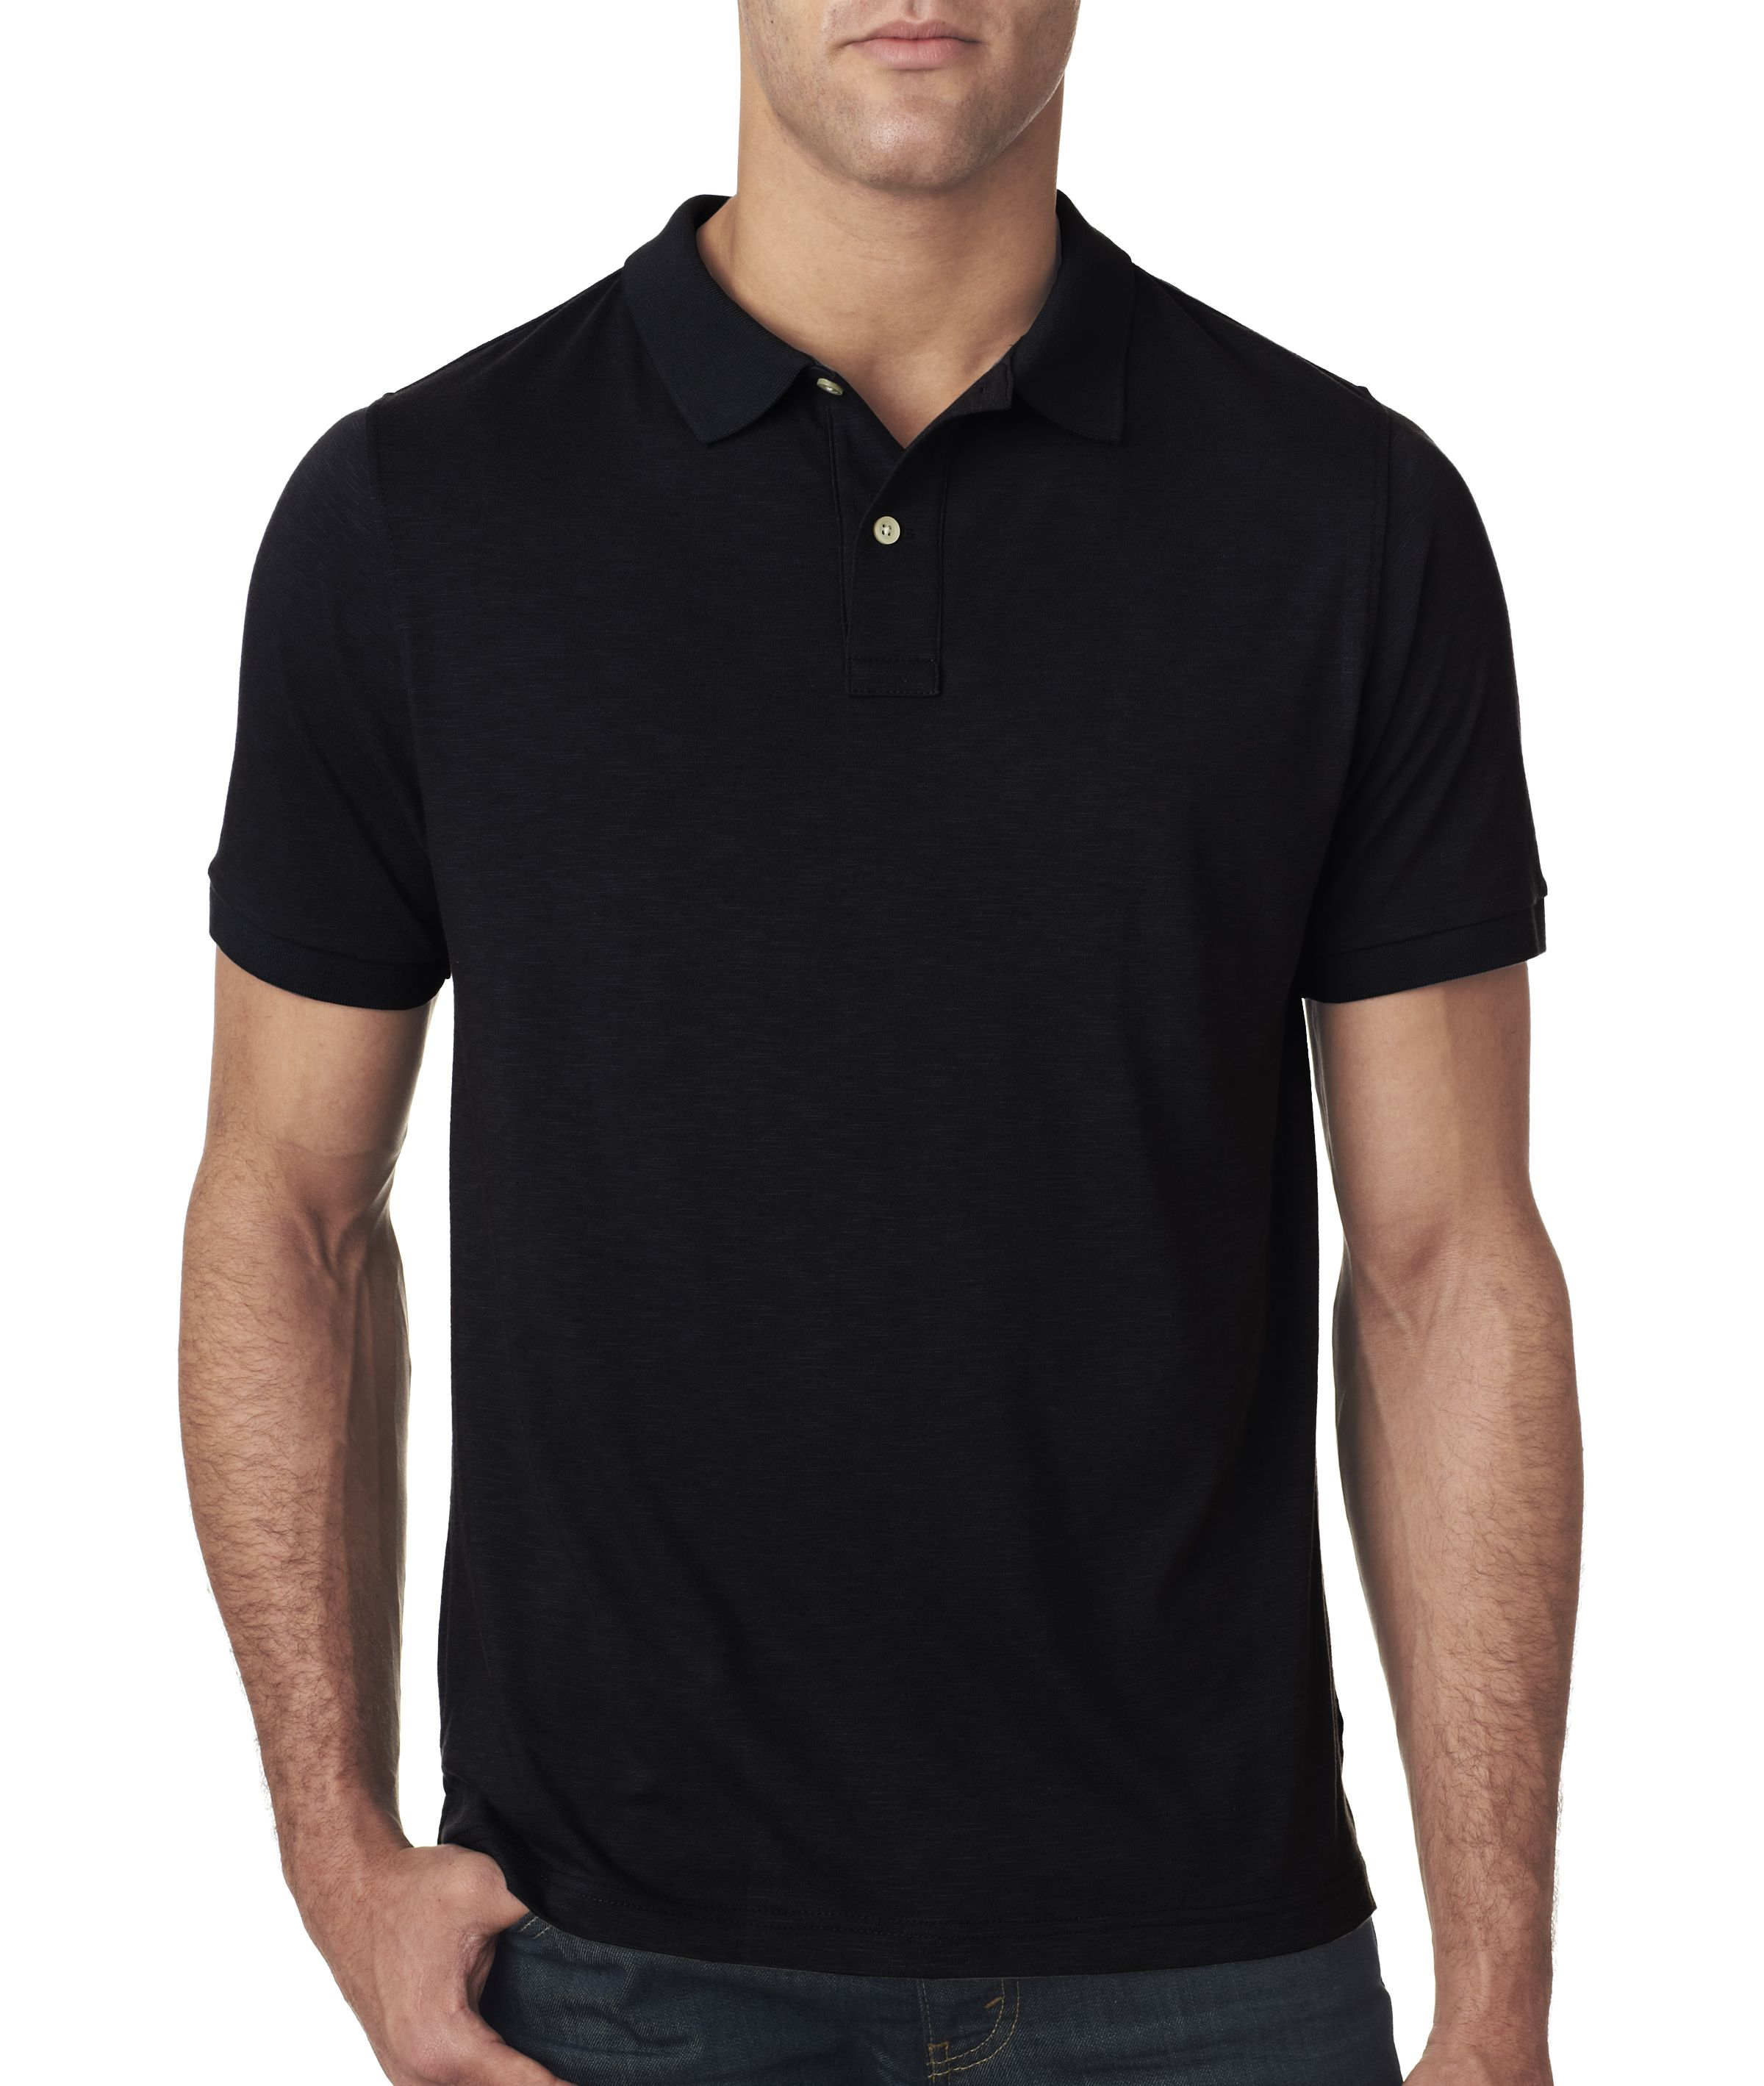 17703d258ecb4 sale mens black polo shirt e6d59 eb090